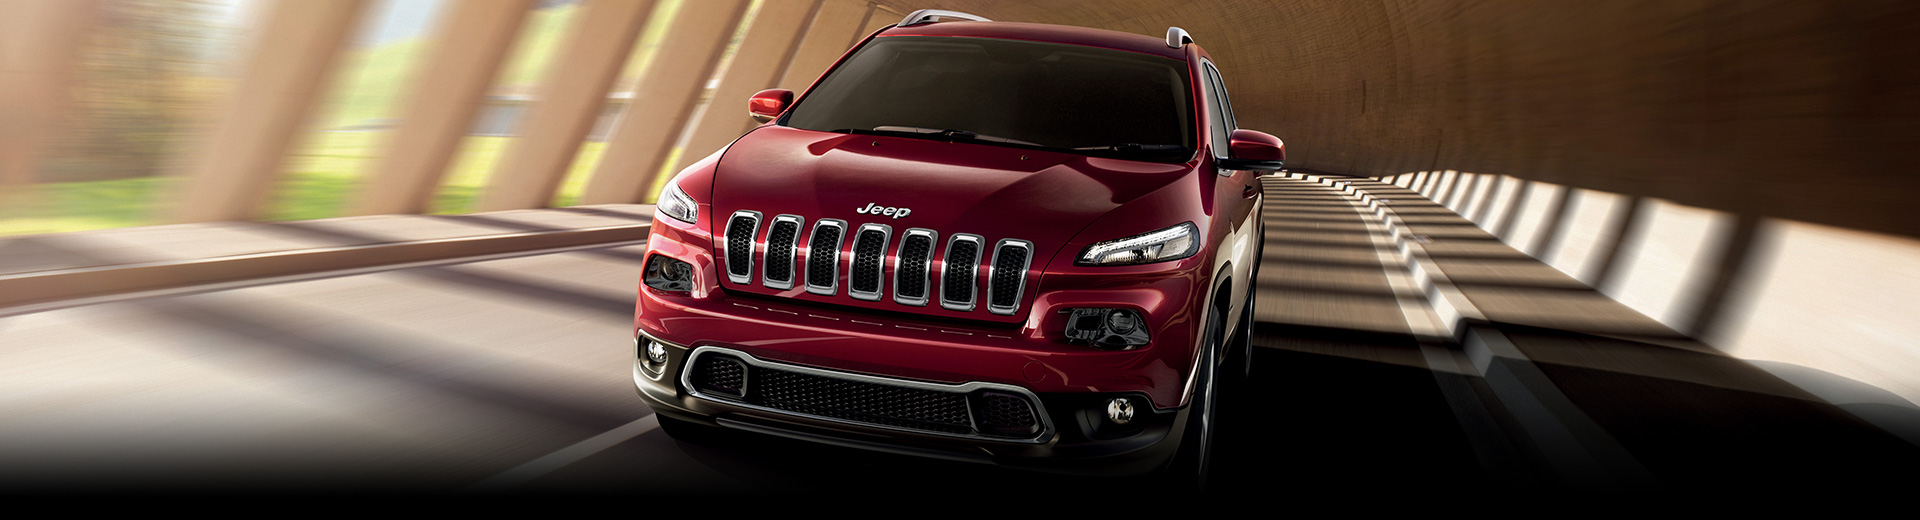 Red Jeep Cherokee